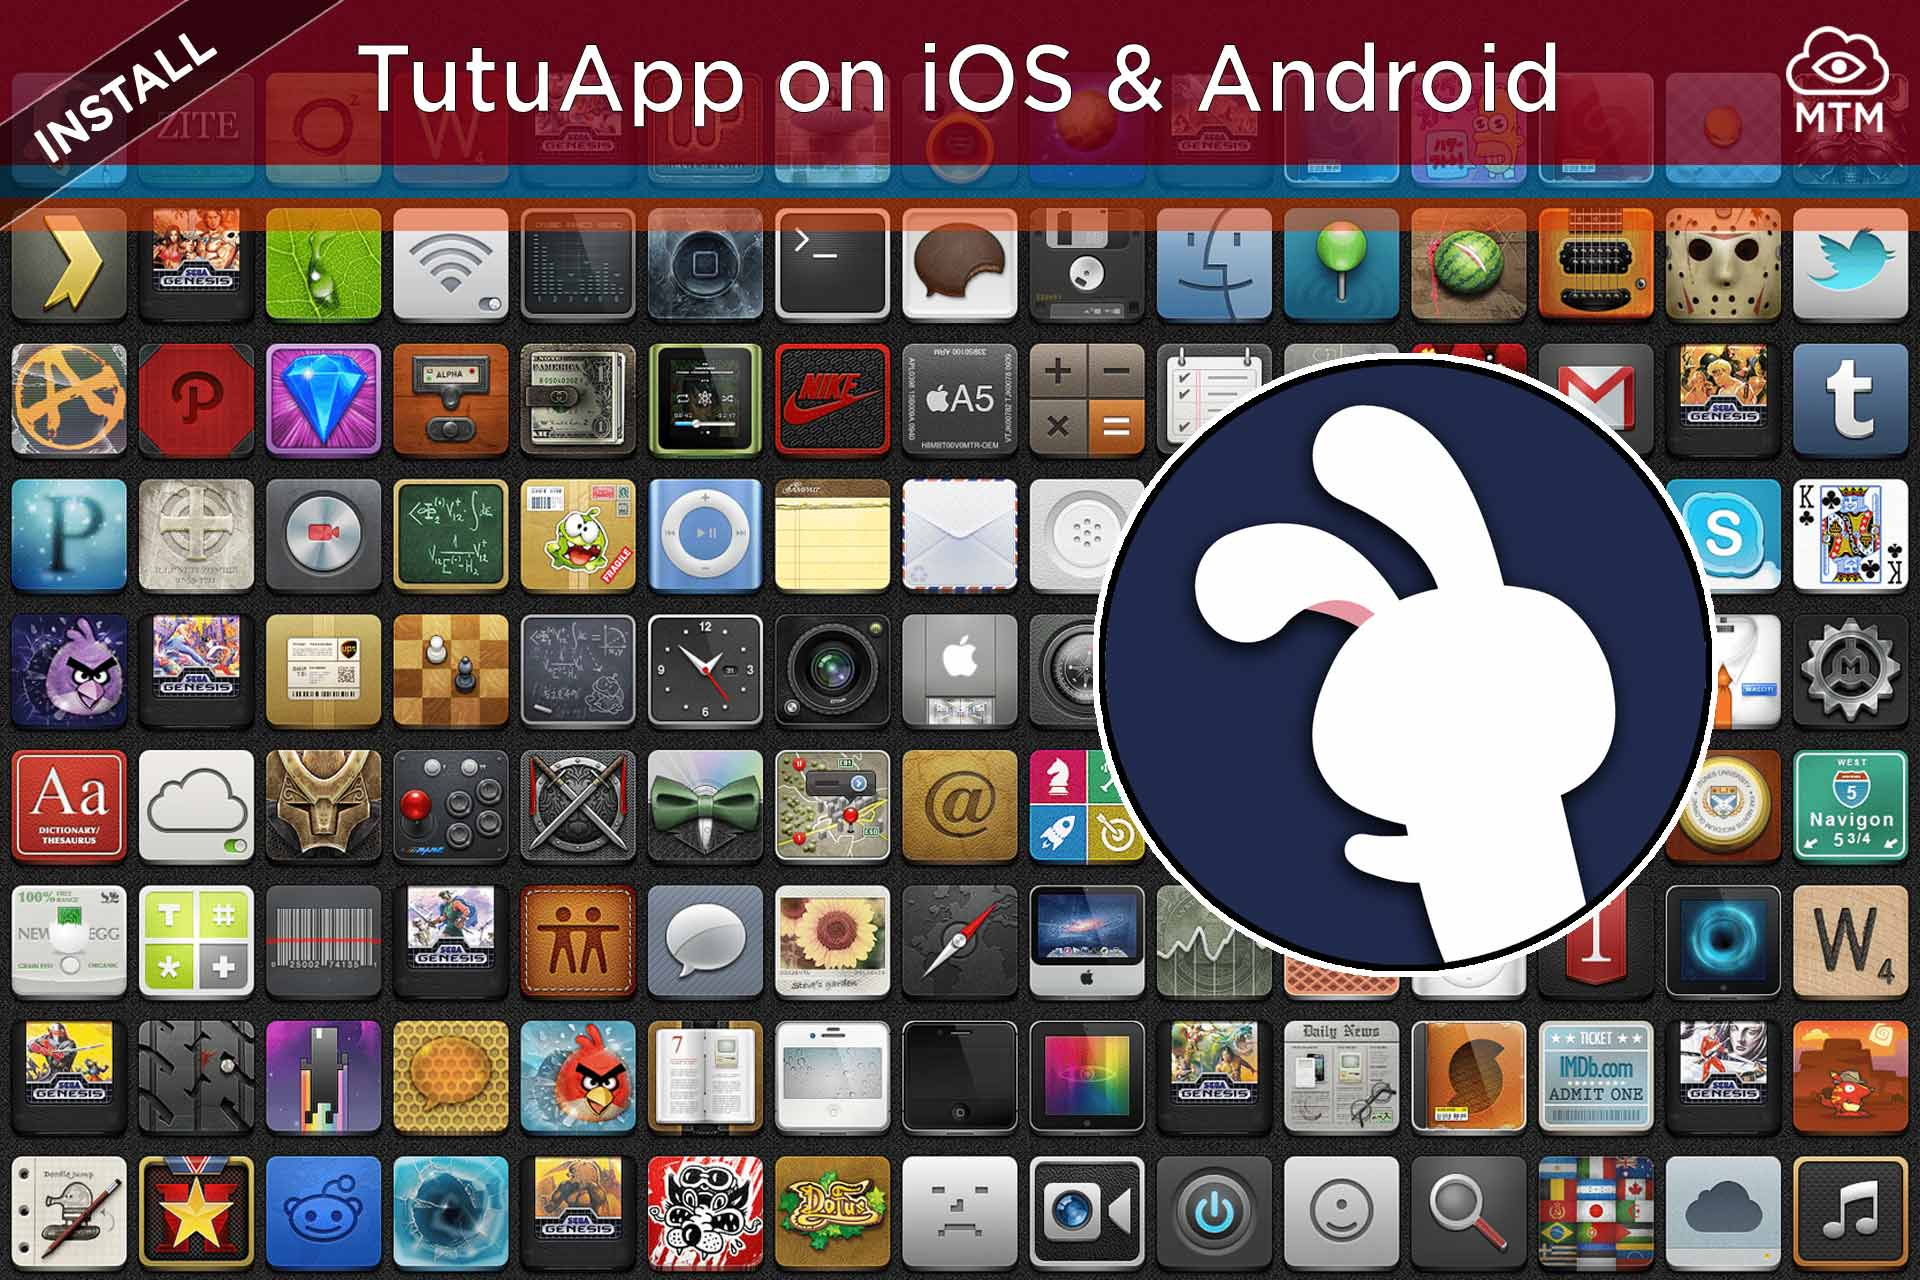 Download TutuApp iPhone & Android Install Free Apps [March 2019]